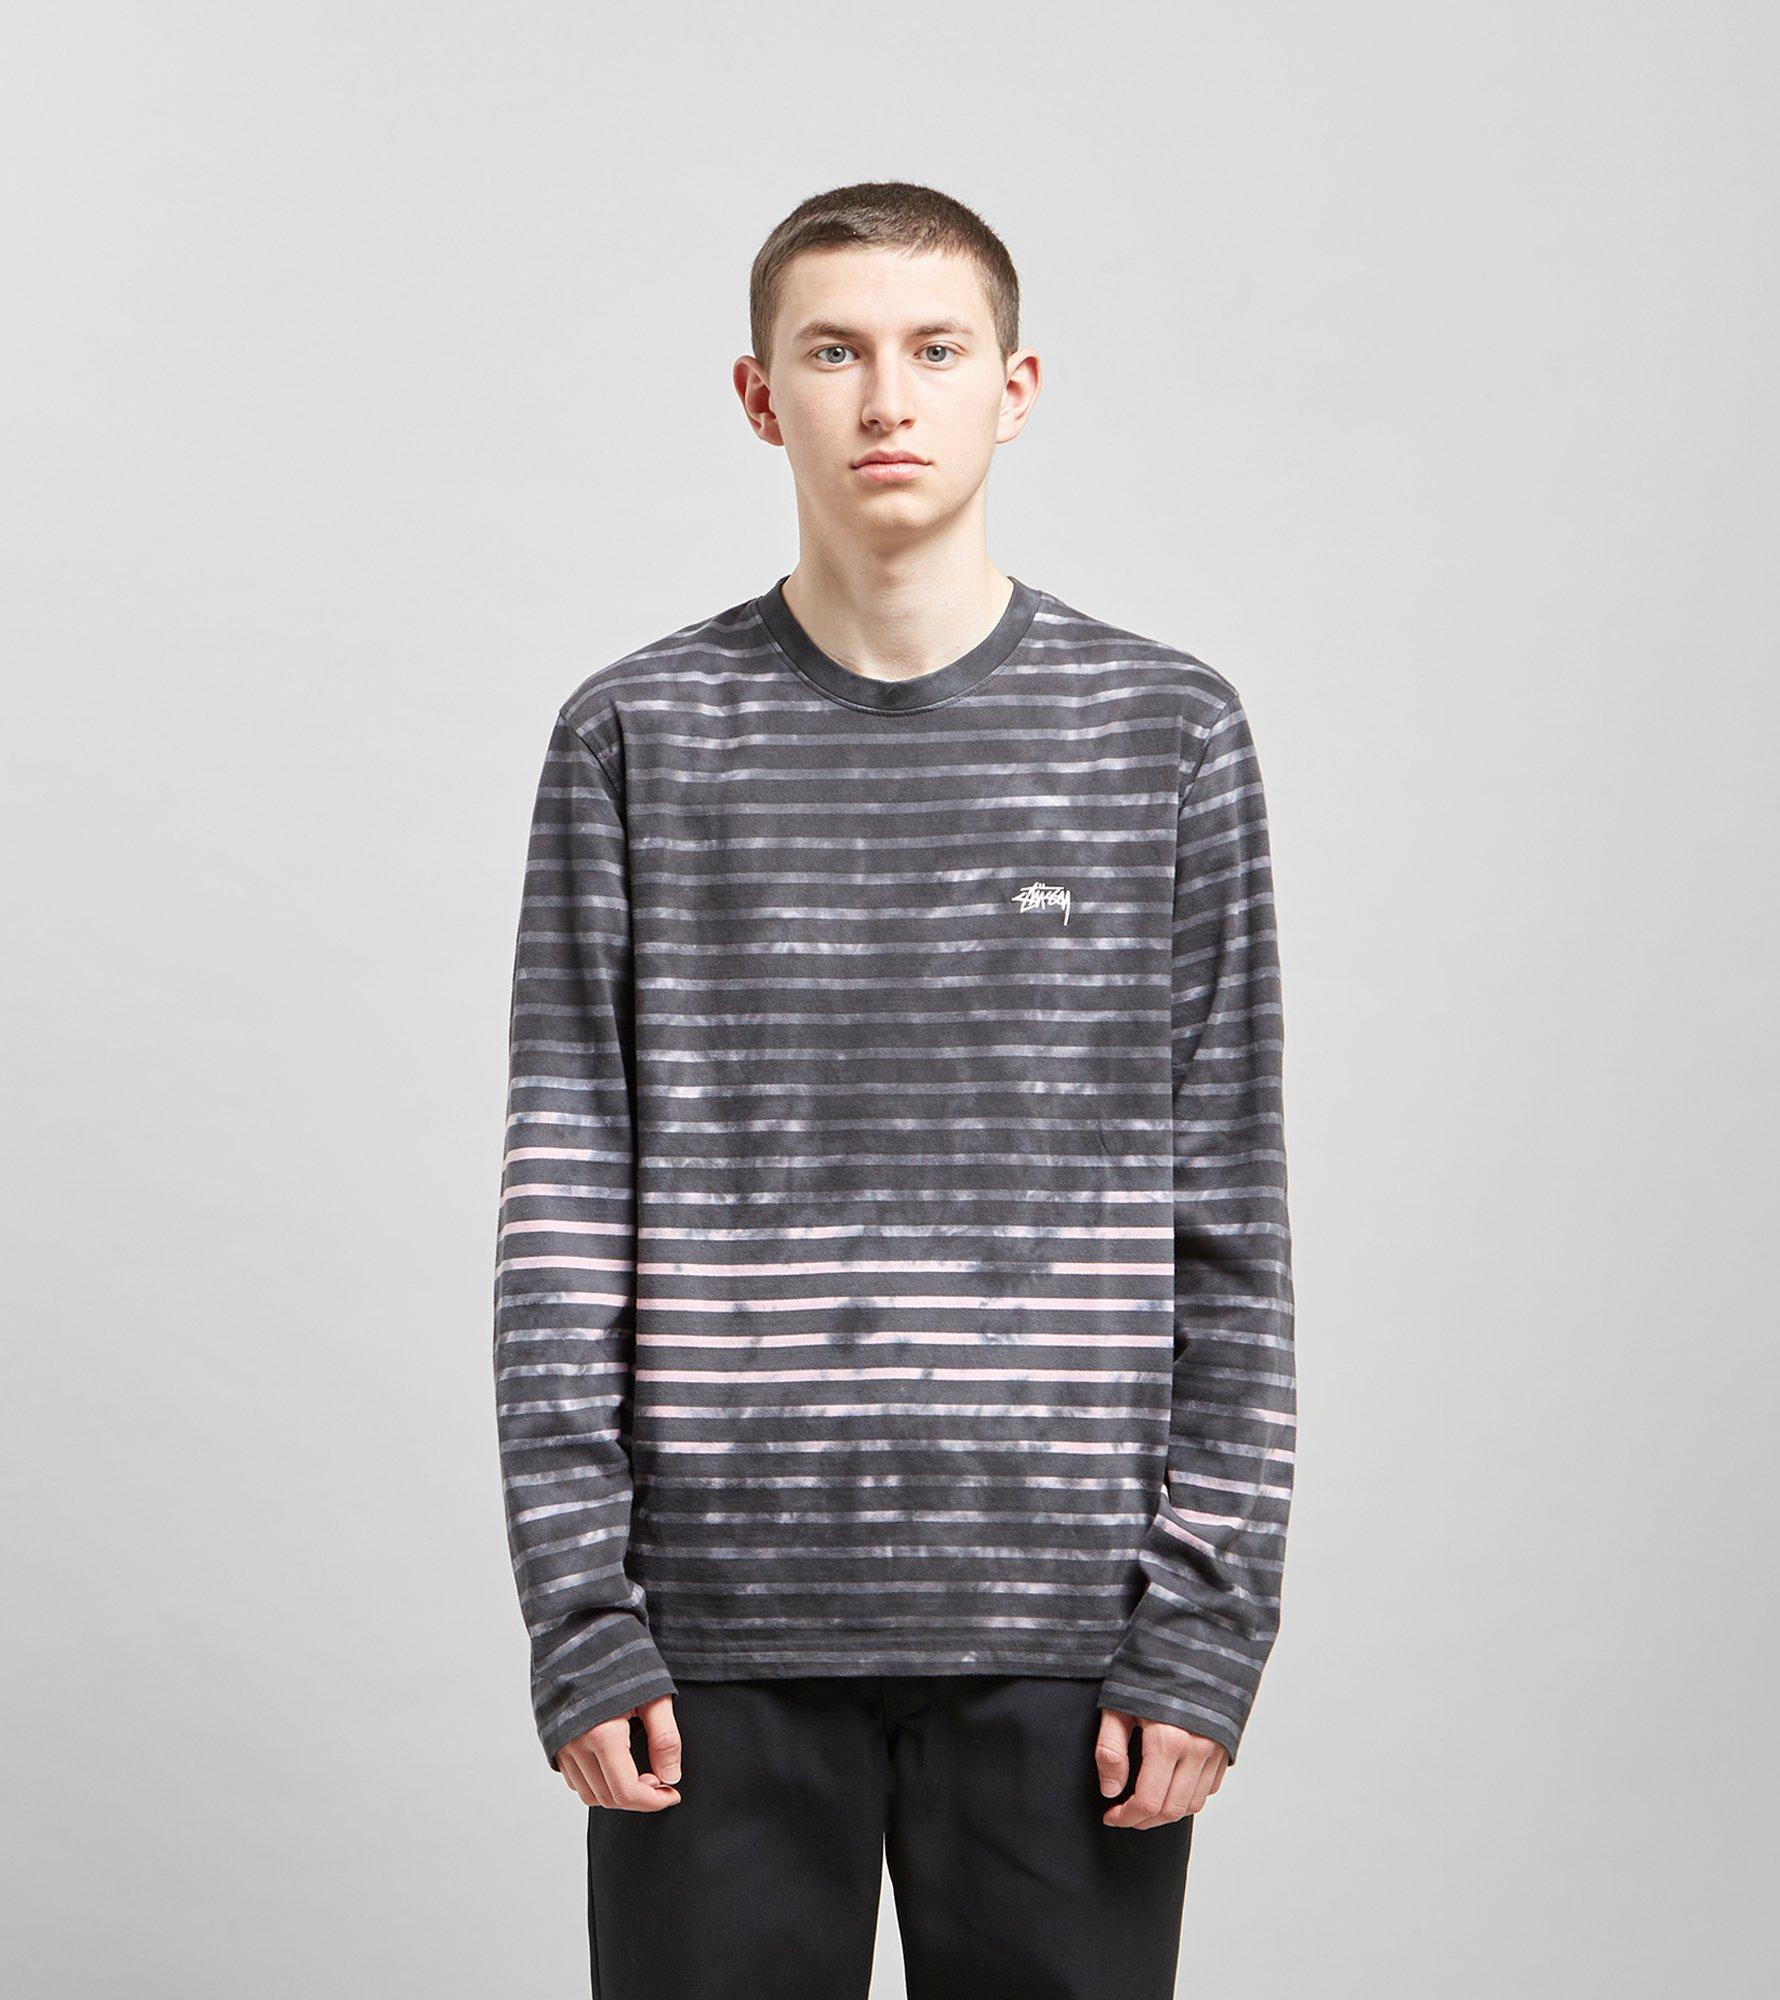 580378be3 Lyst - Stussy Bleach Stripe Long Sleeved T-shirt in Gray for Men